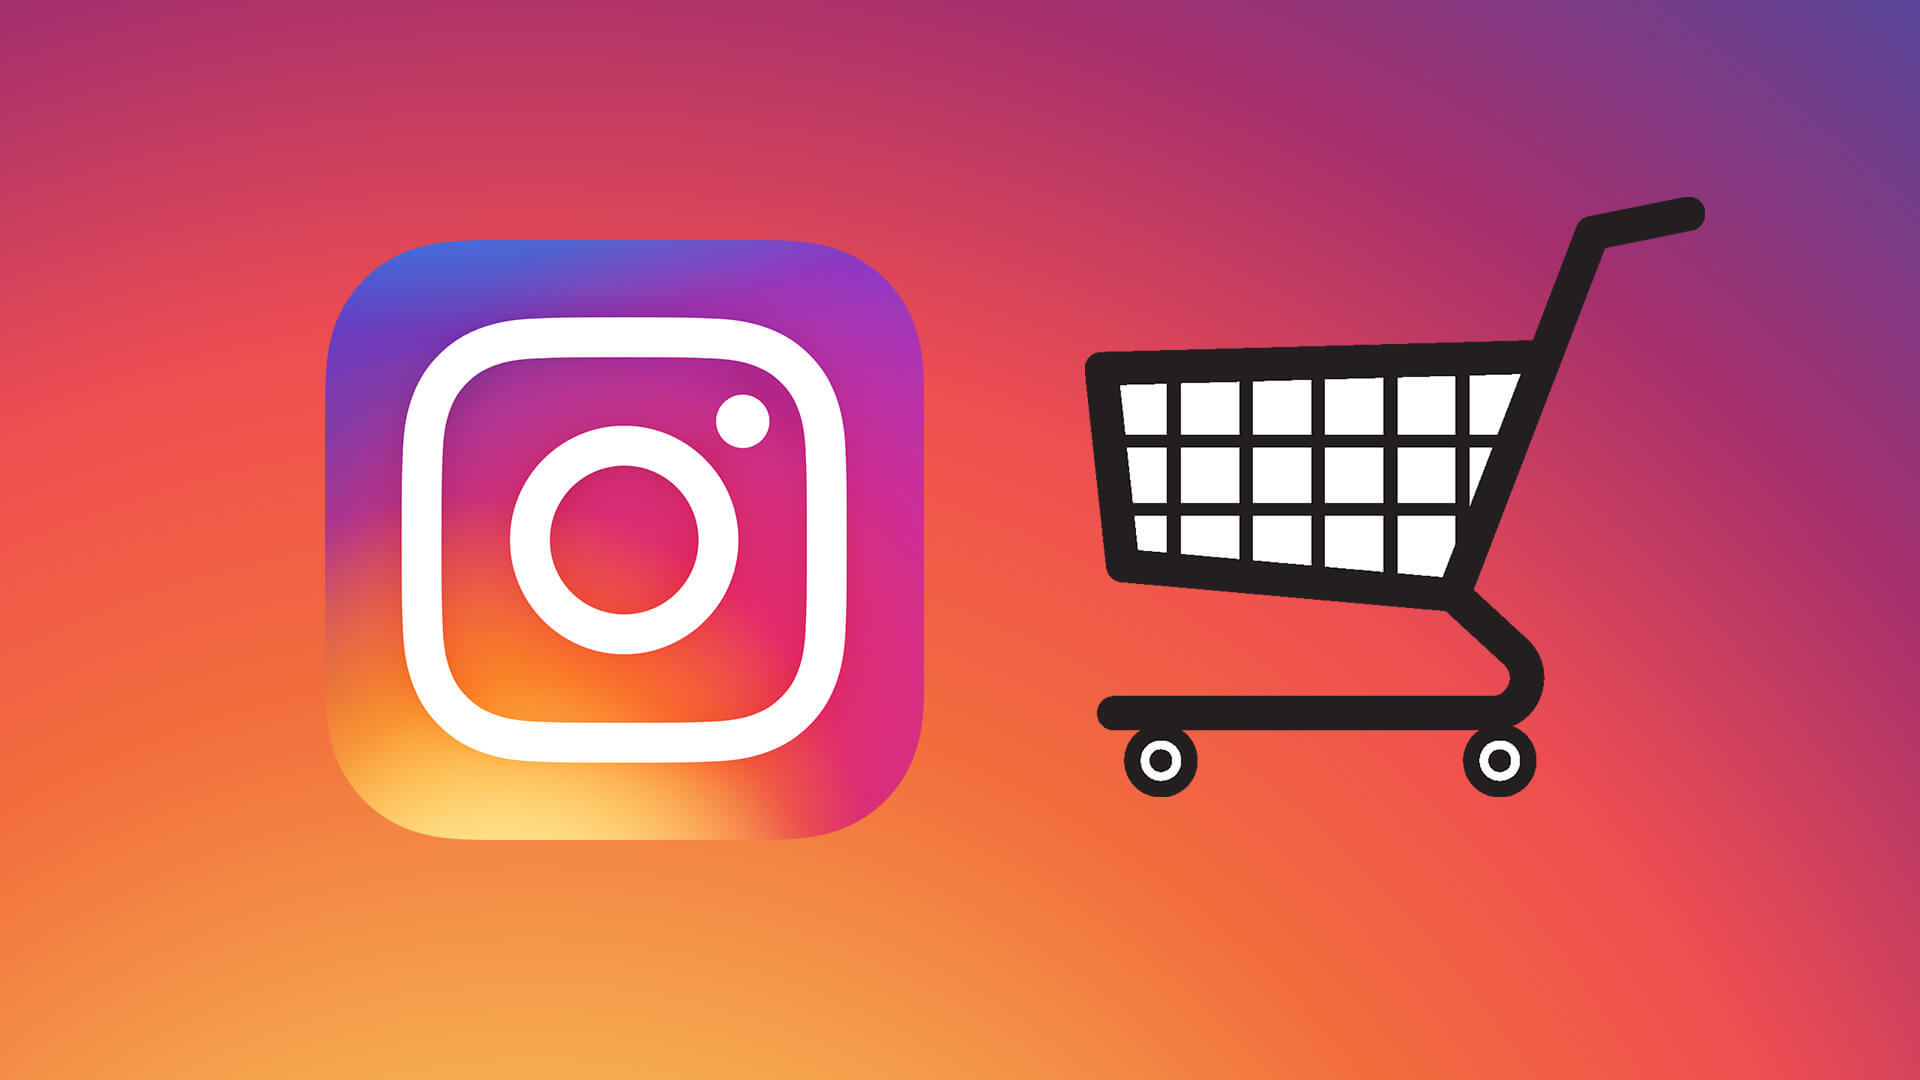 Instagram launches Instagram Shopping function in the UK